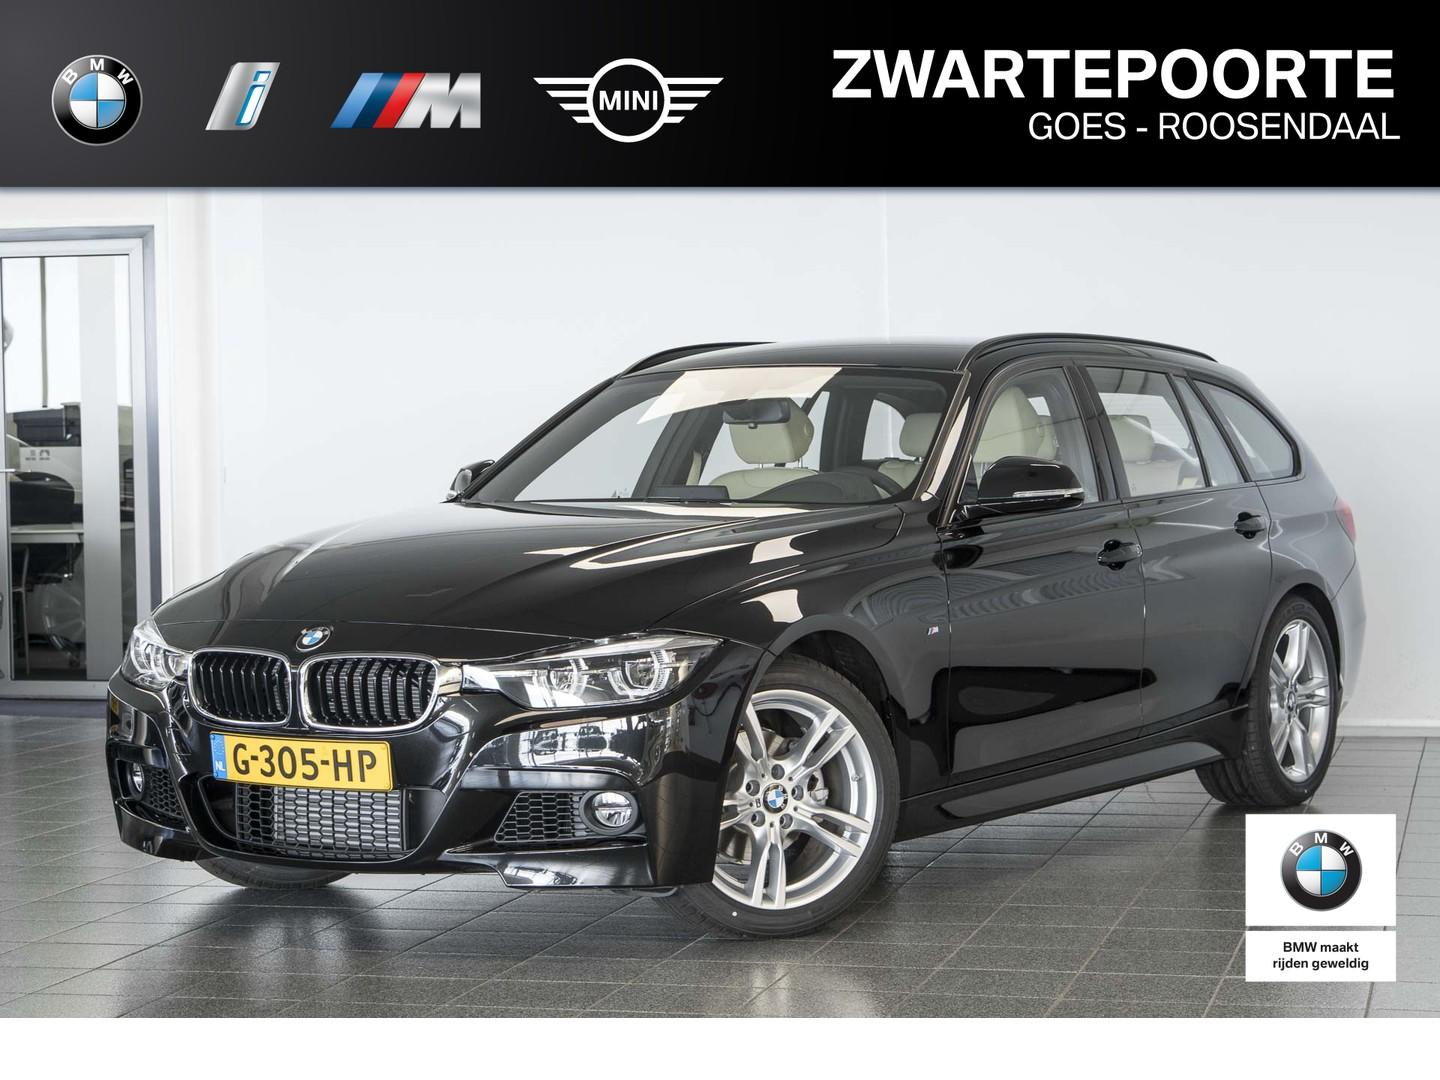 Bmw 3 serie Touring 318i m sport corporate lease - 18'' lm - pdc